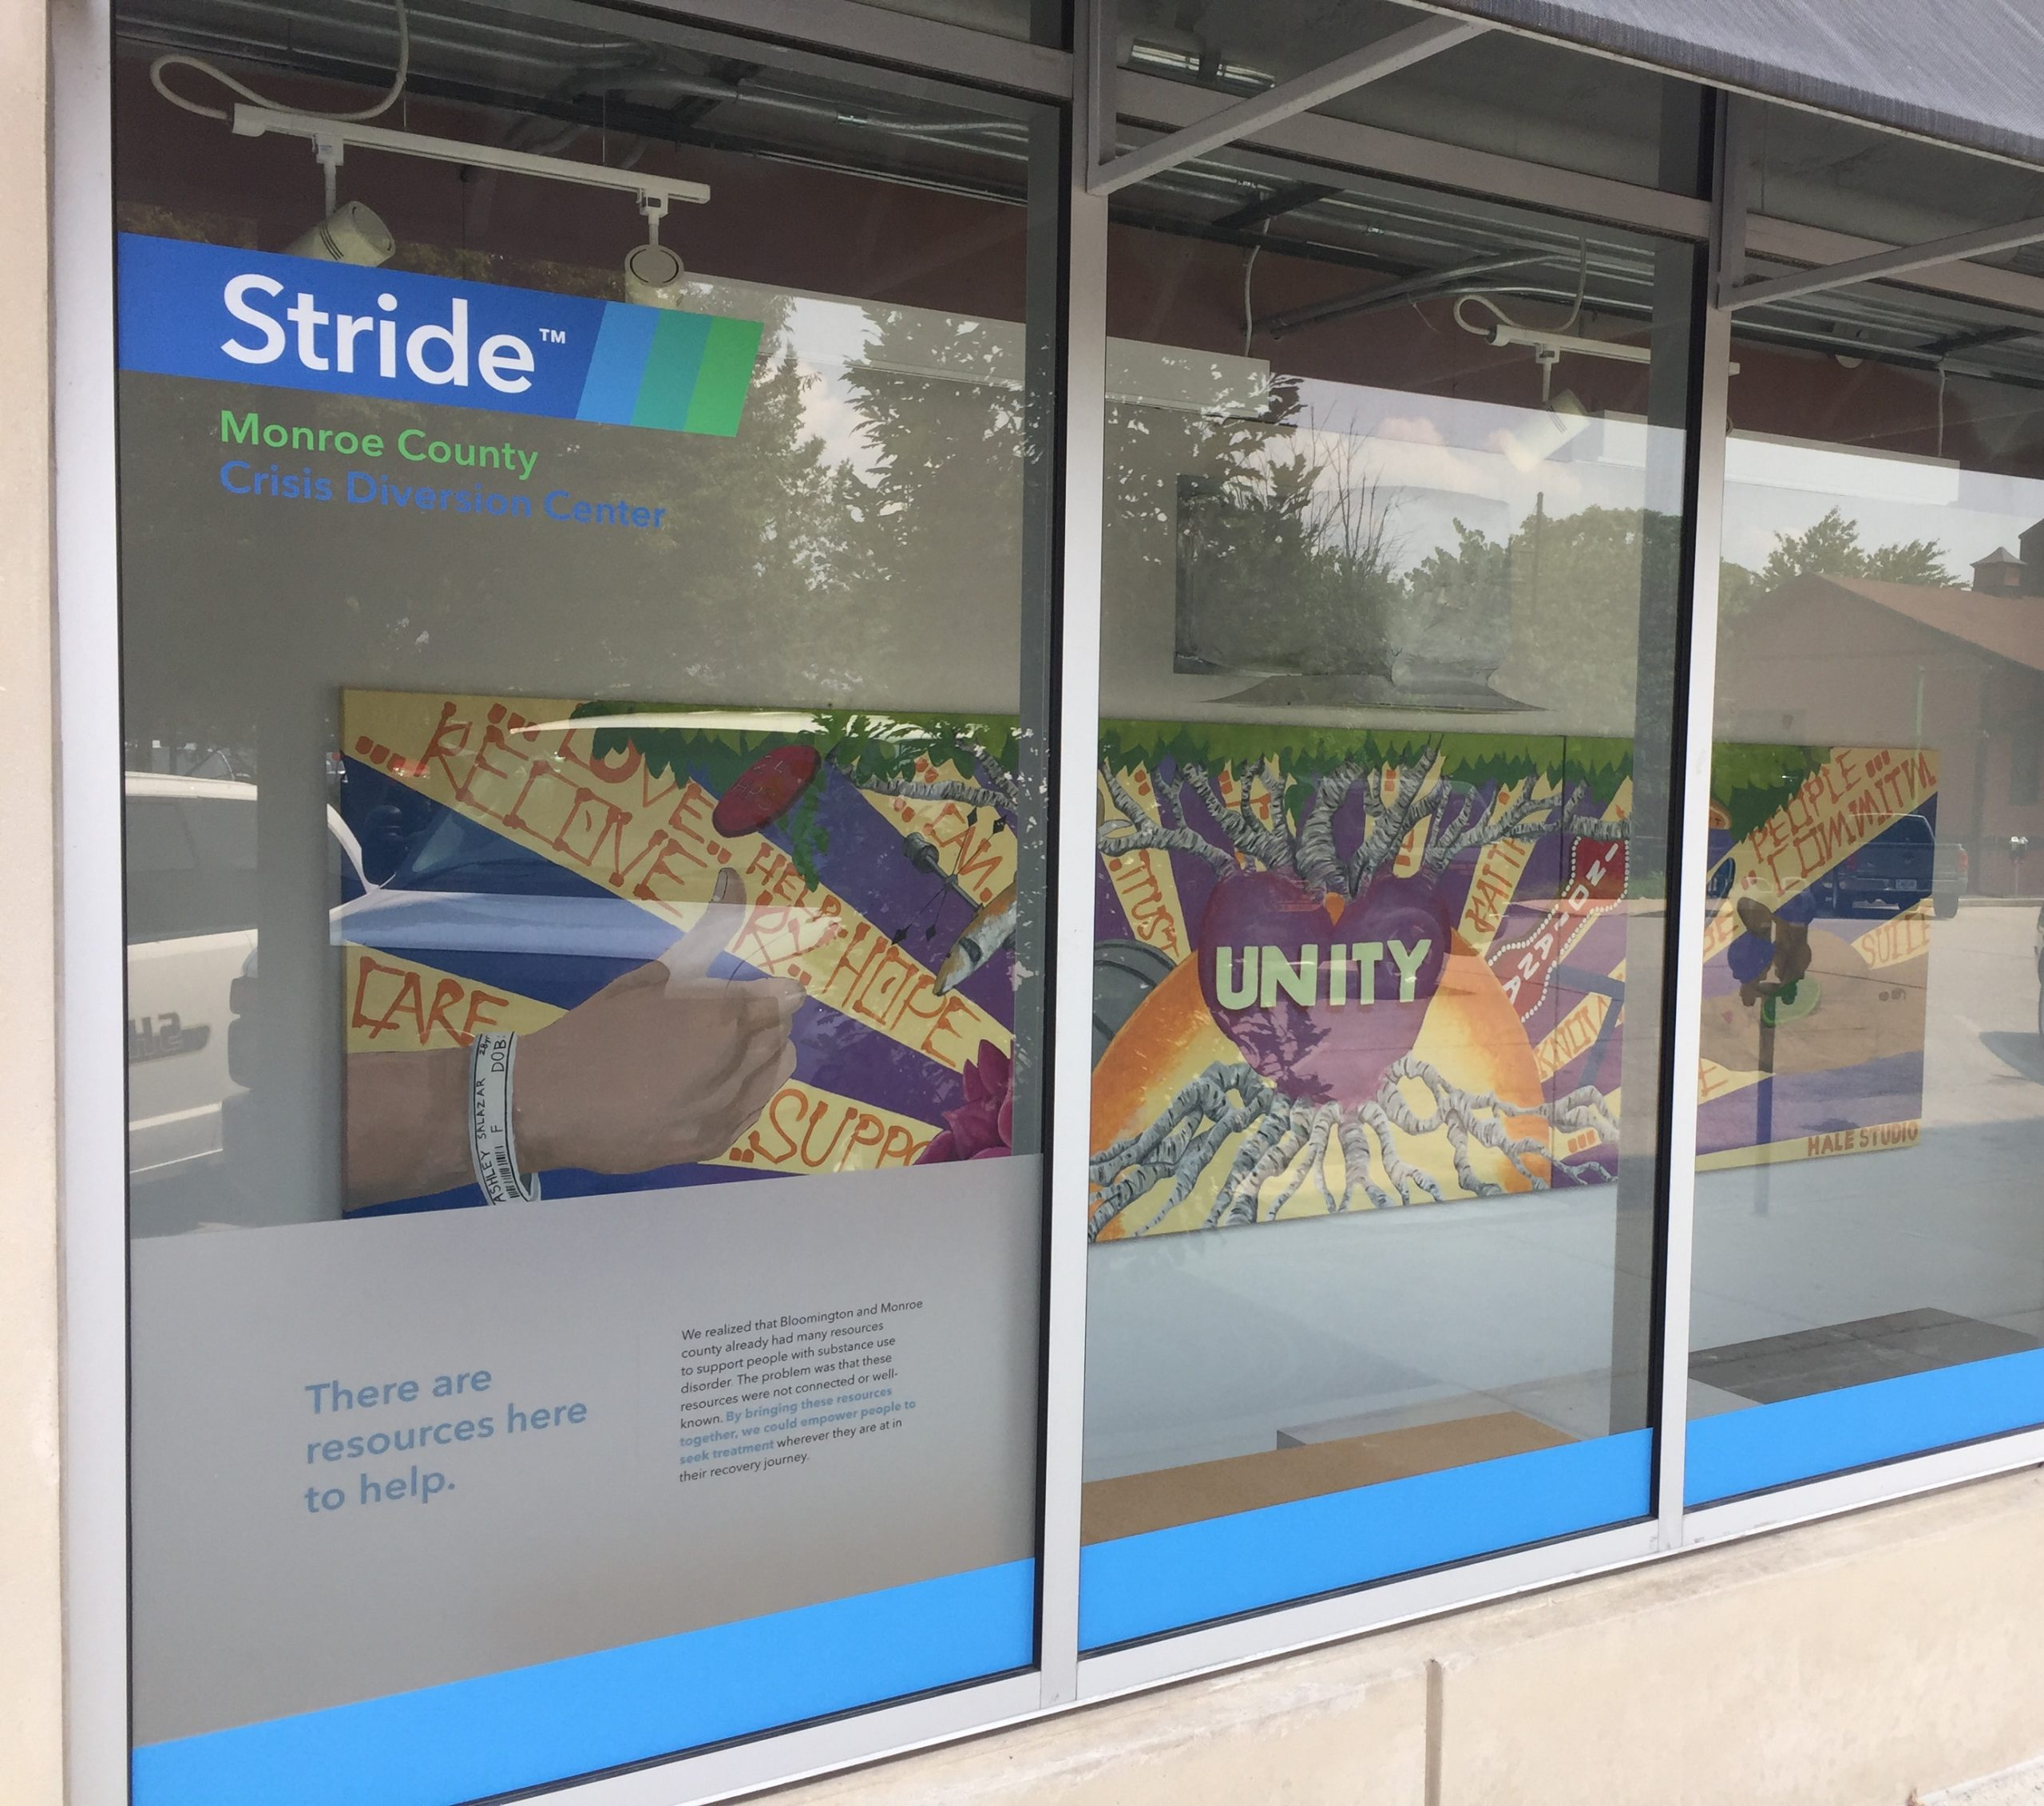 The front window display of the Stride Center at 312 N. Morton St. in Bloomington. Susan Harrington, program manager at the center, says Stride is a voluntary diversion center and 'resource hub.'   Limestone Post